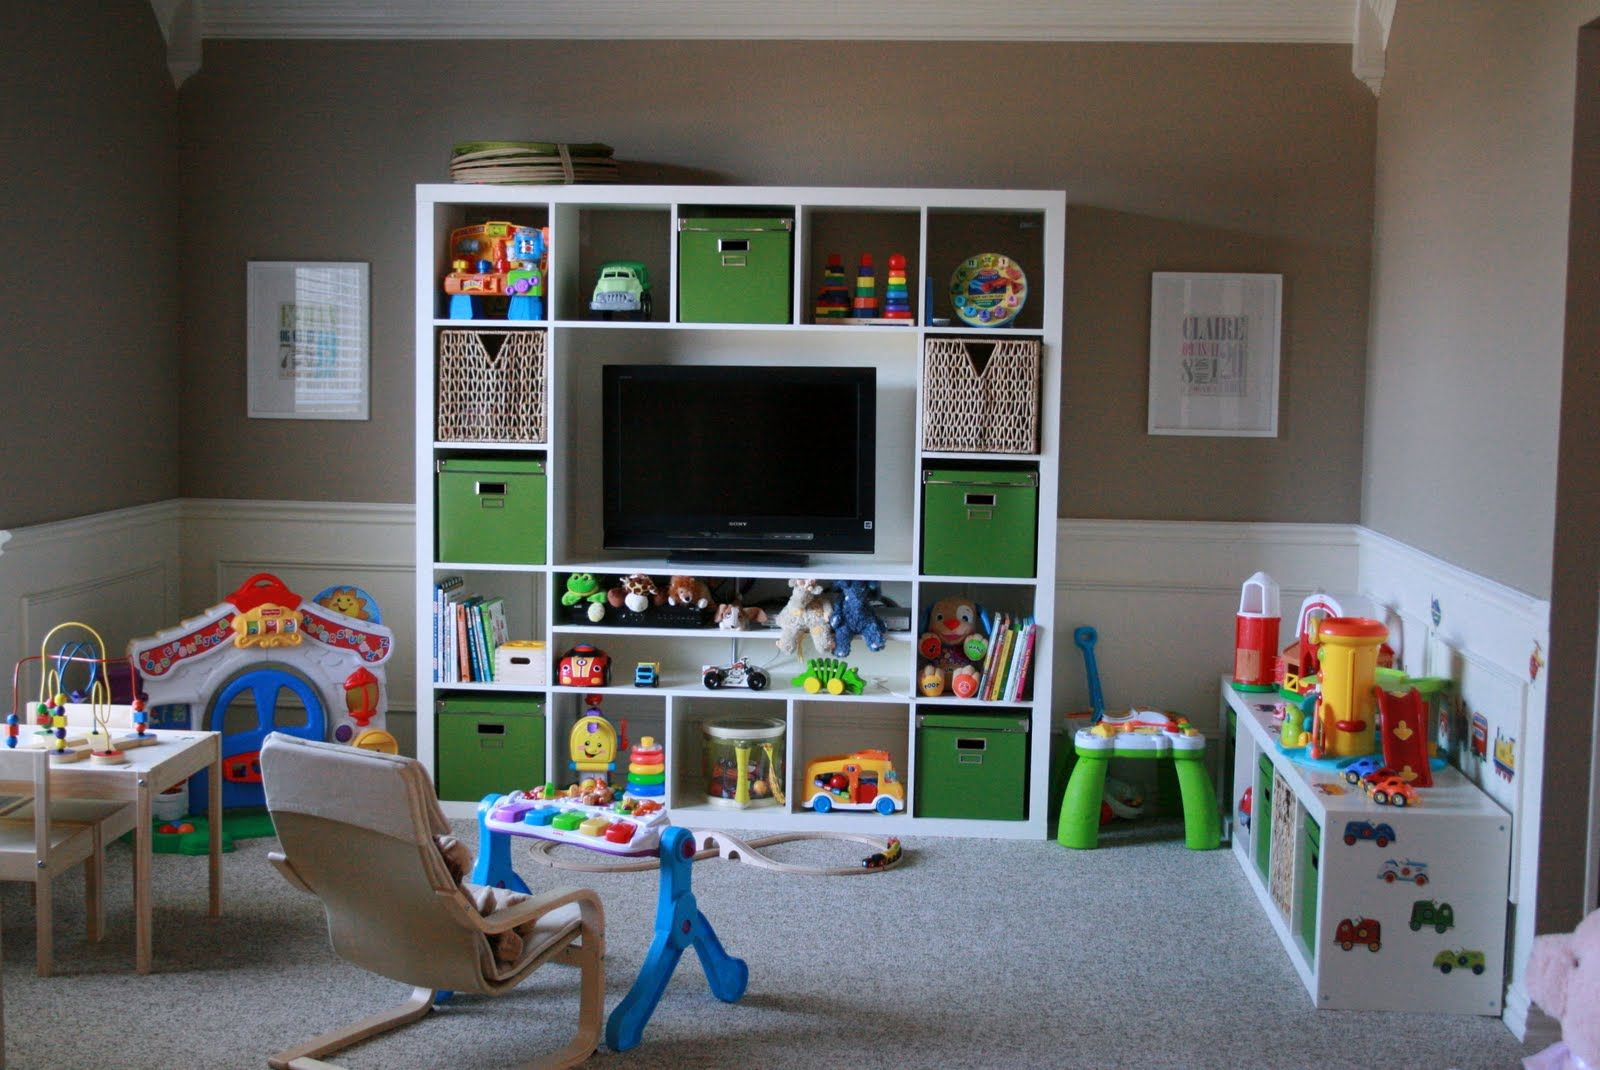 Awesome Marvelous Kids Playroom Design Ideas With White Lacquer Open Storage  Shelves Be Equipped Toy Storage Bins Of Furniture, Interior, Kids  RoomBookshelves For ... Home Design Ideas